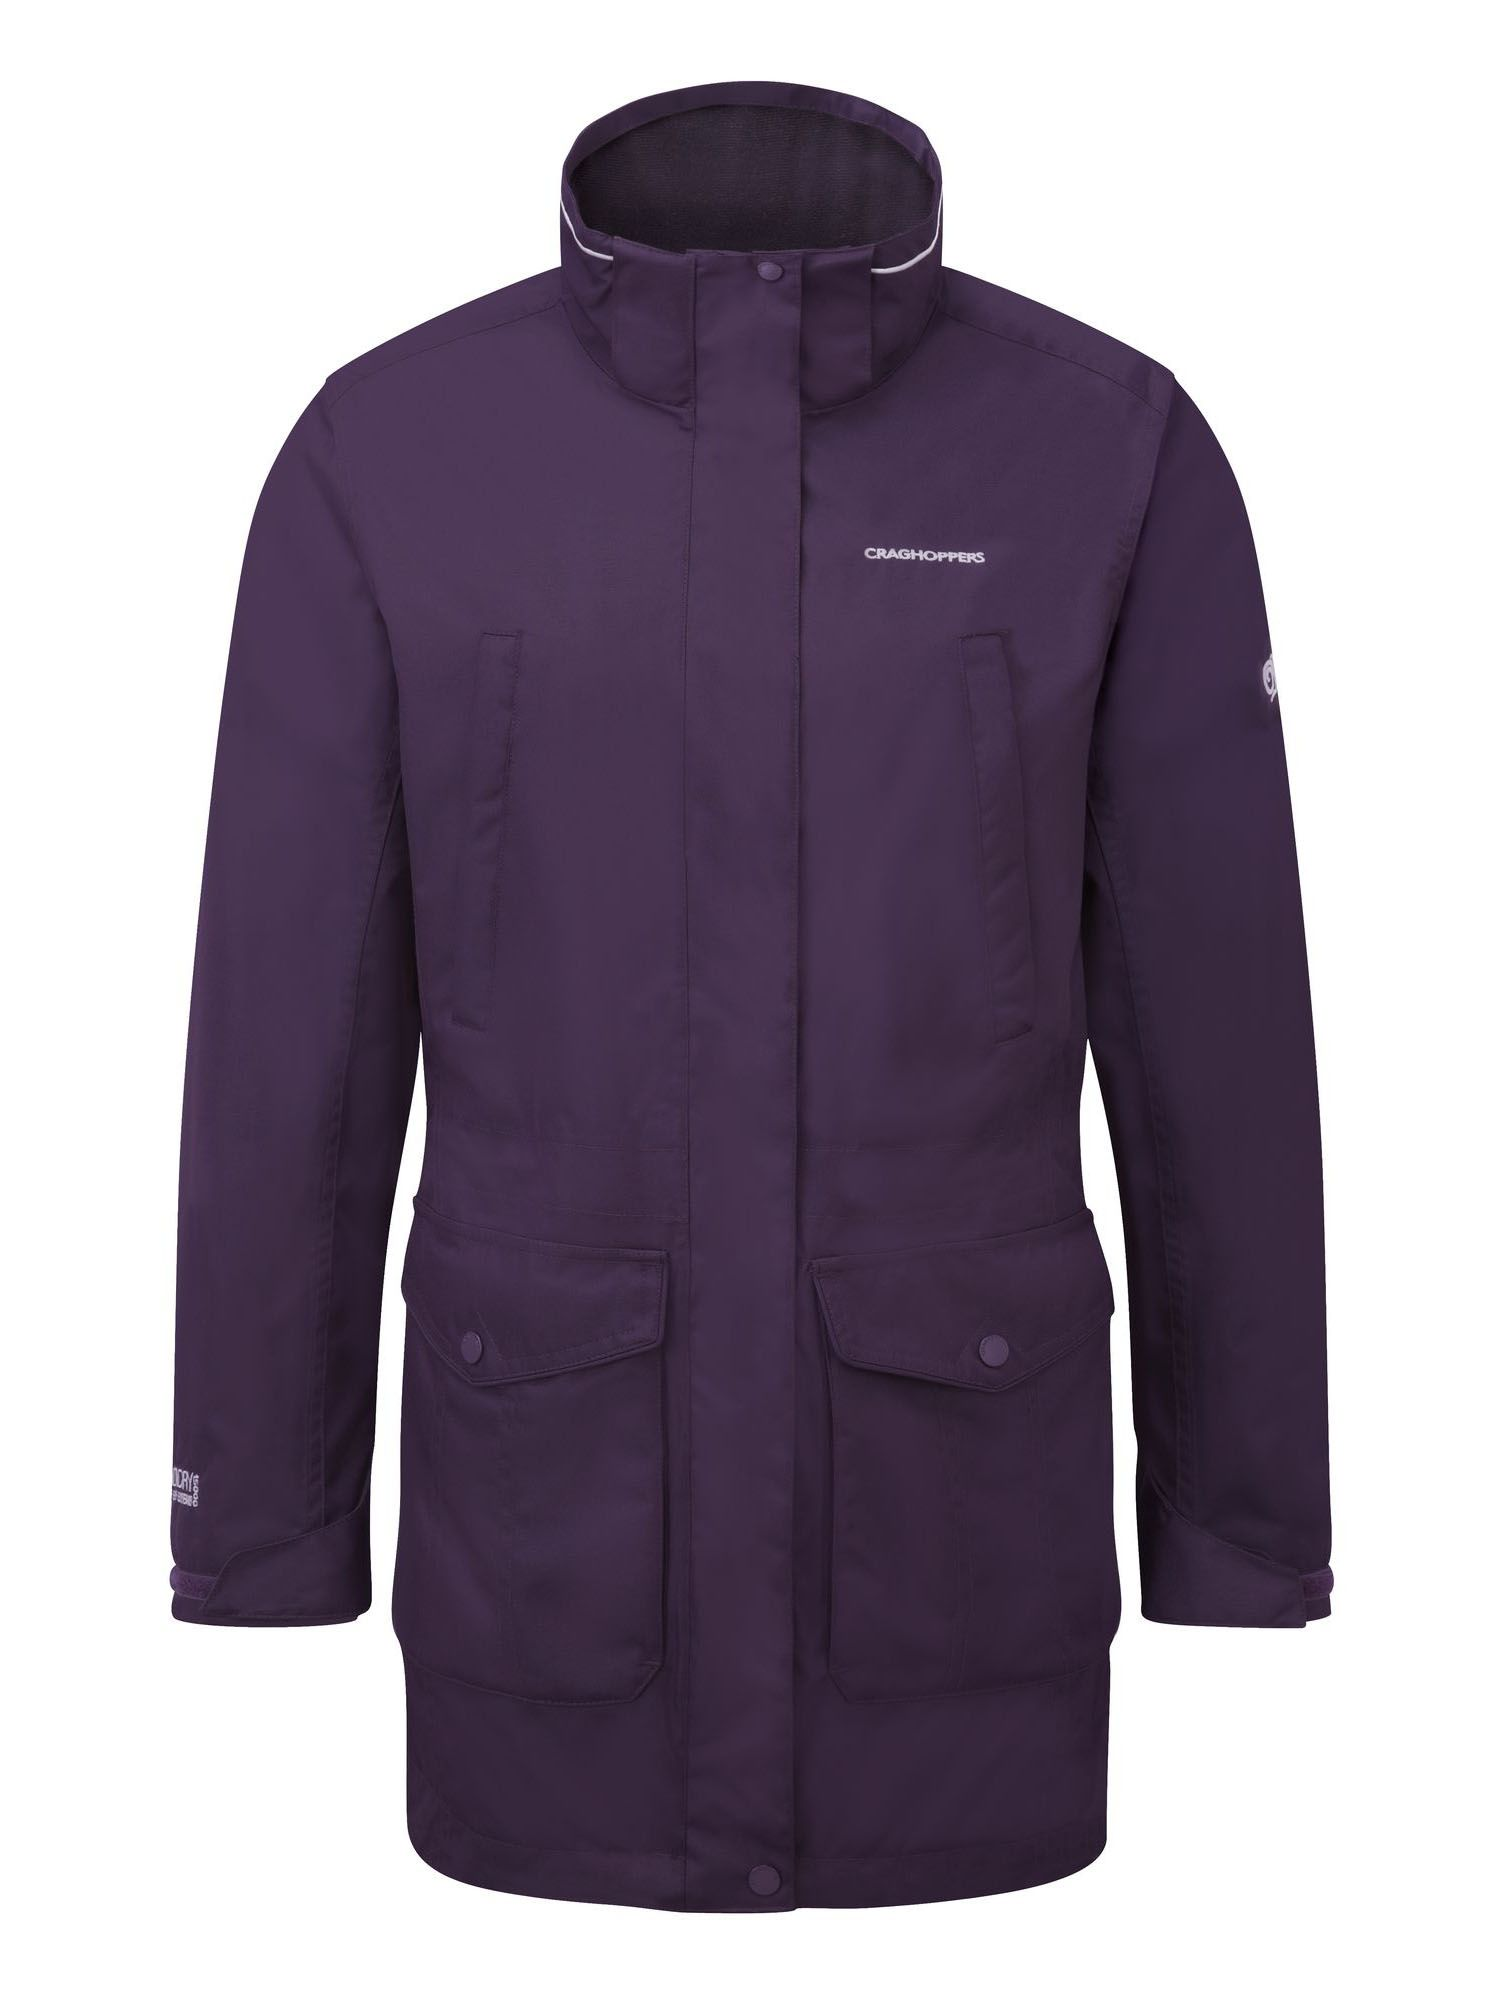 Craghoppers Madigan lll Long Waterproof Jacket, Dark Purple